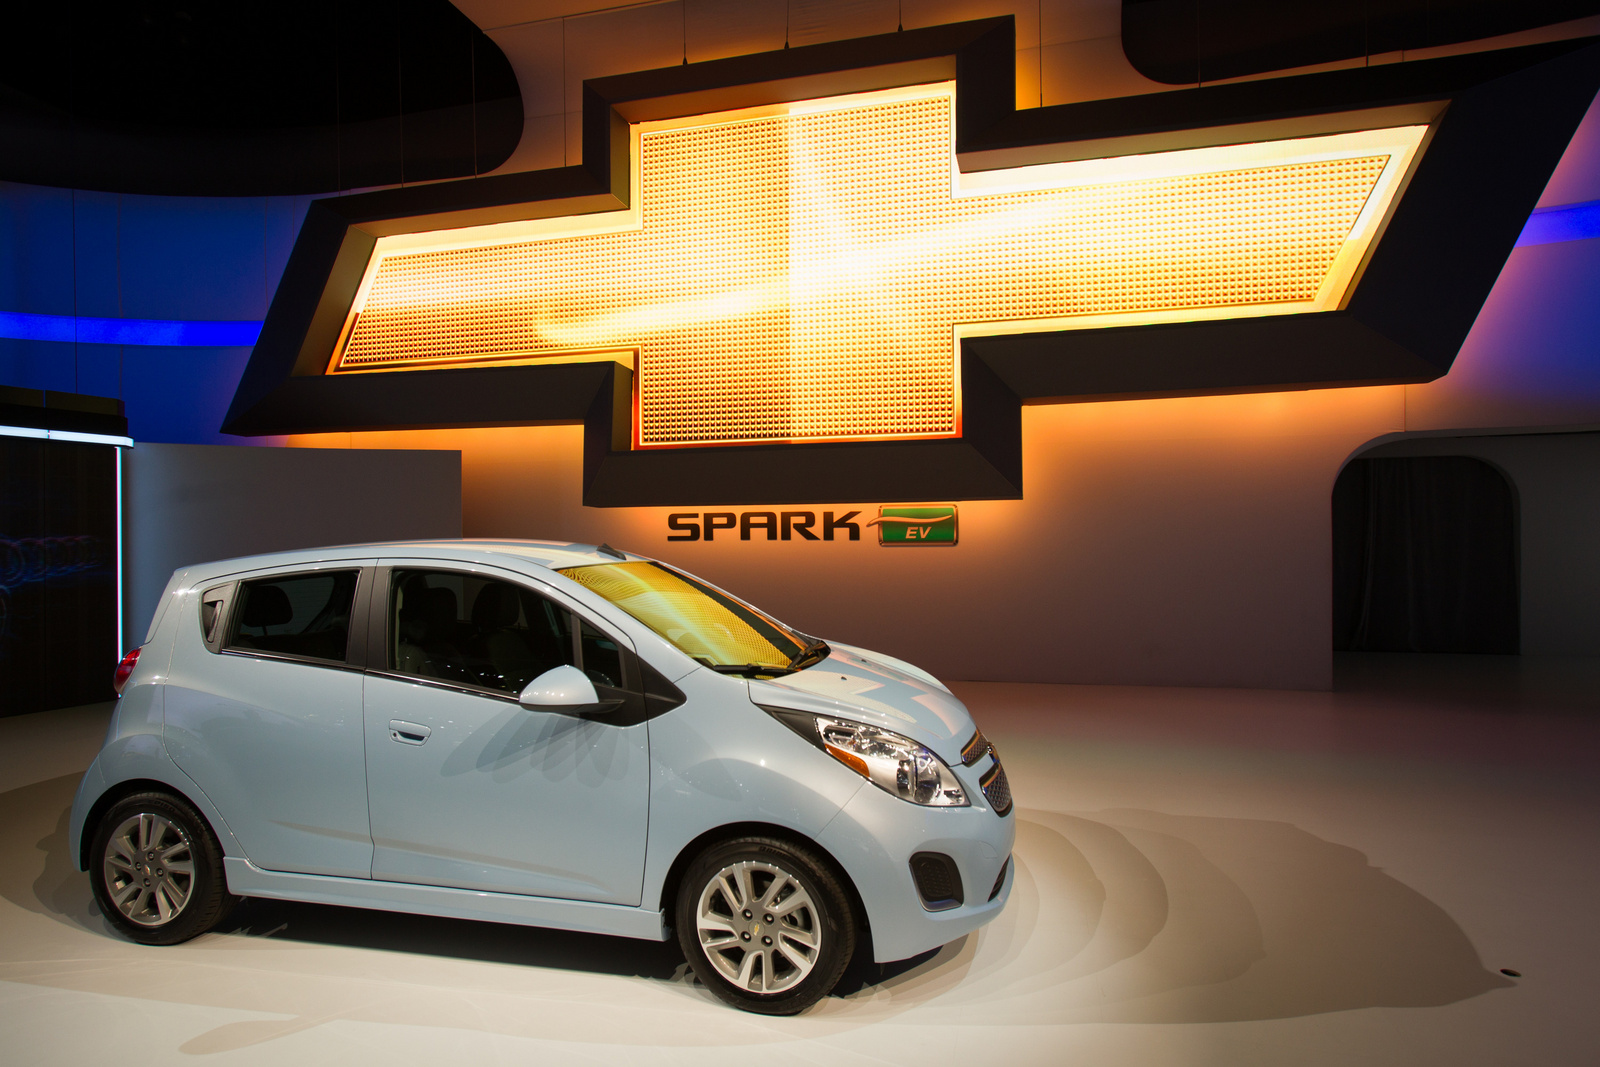 2014 Chevy Spark EV Offers 82 Mile Electric Range